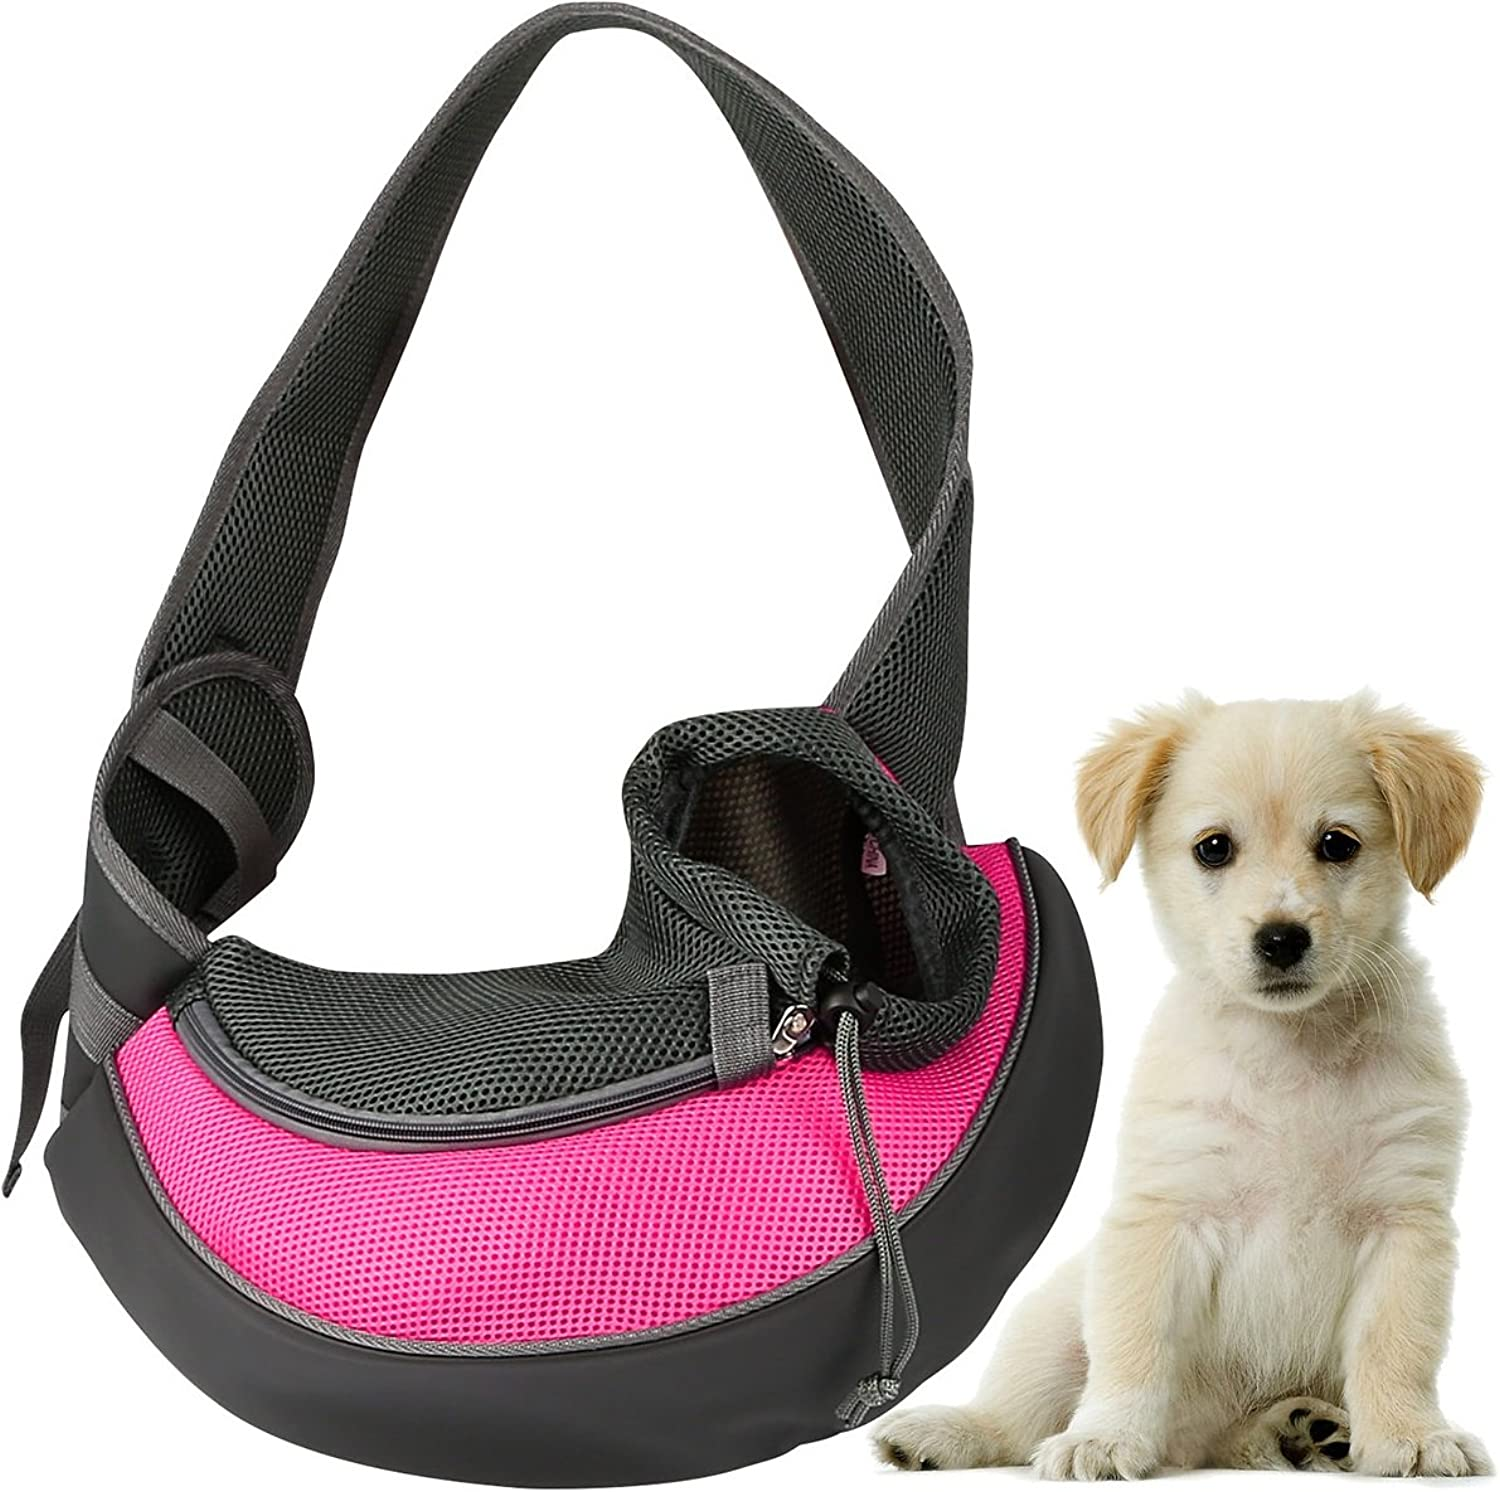 GPCT Pet Puppy Carrier Sling HandsFree Shoulder Travel Bag. Great for Walking Your Pet. Dog Cat Pet Puppy Outdoor Reversible Pouch Mesh Shoulder Carry Bag Tote Handbag Carrier (Pink Large)